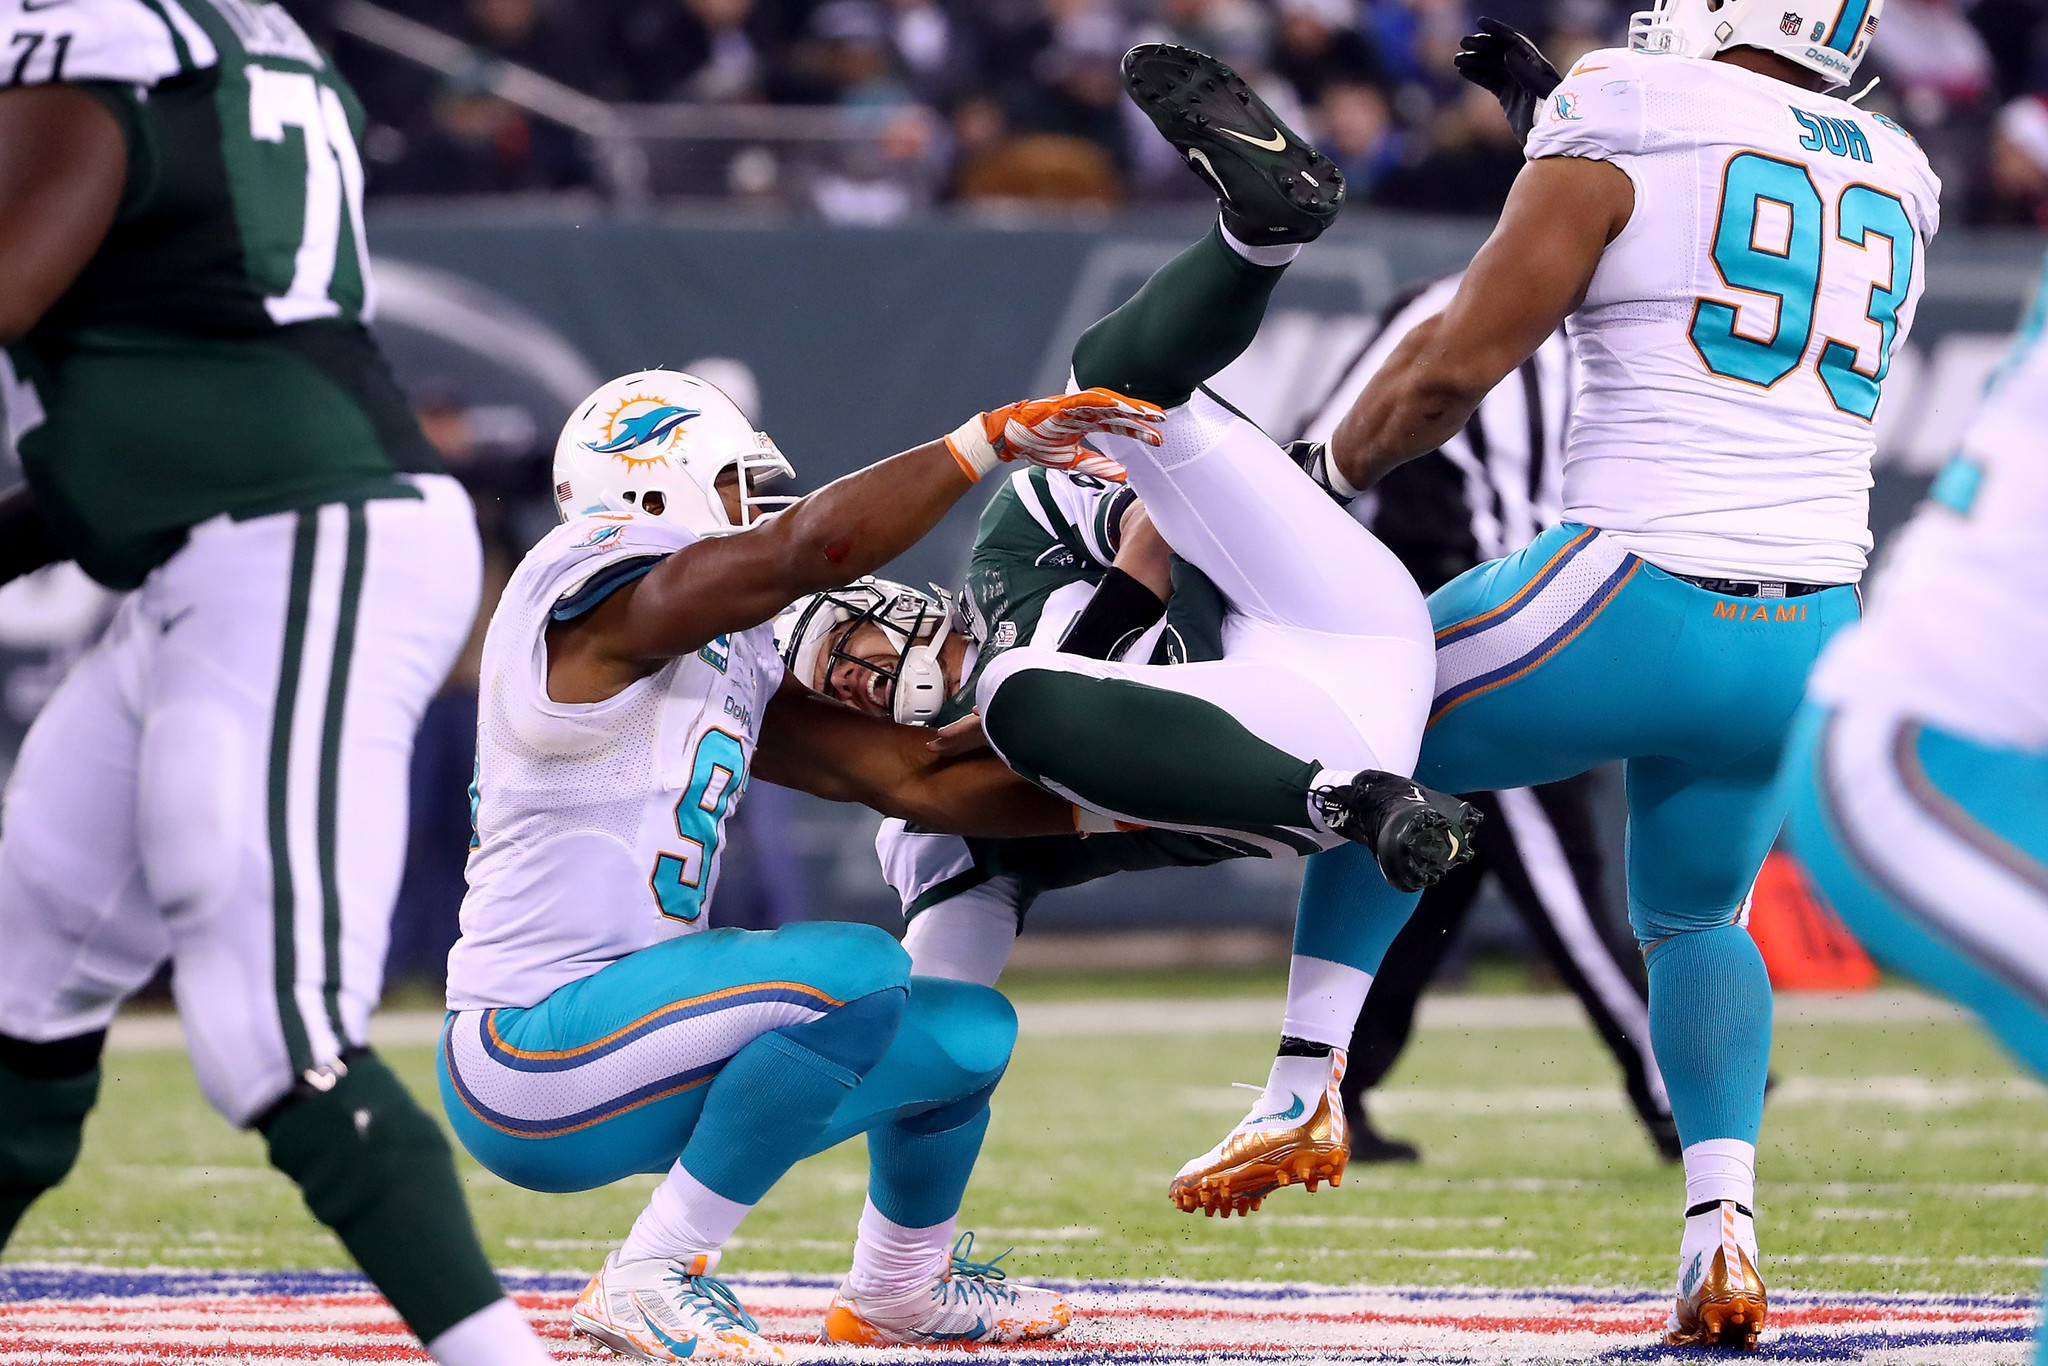 Dolphins defensive linemen Cameron Wake and Ndamukong Suh named to